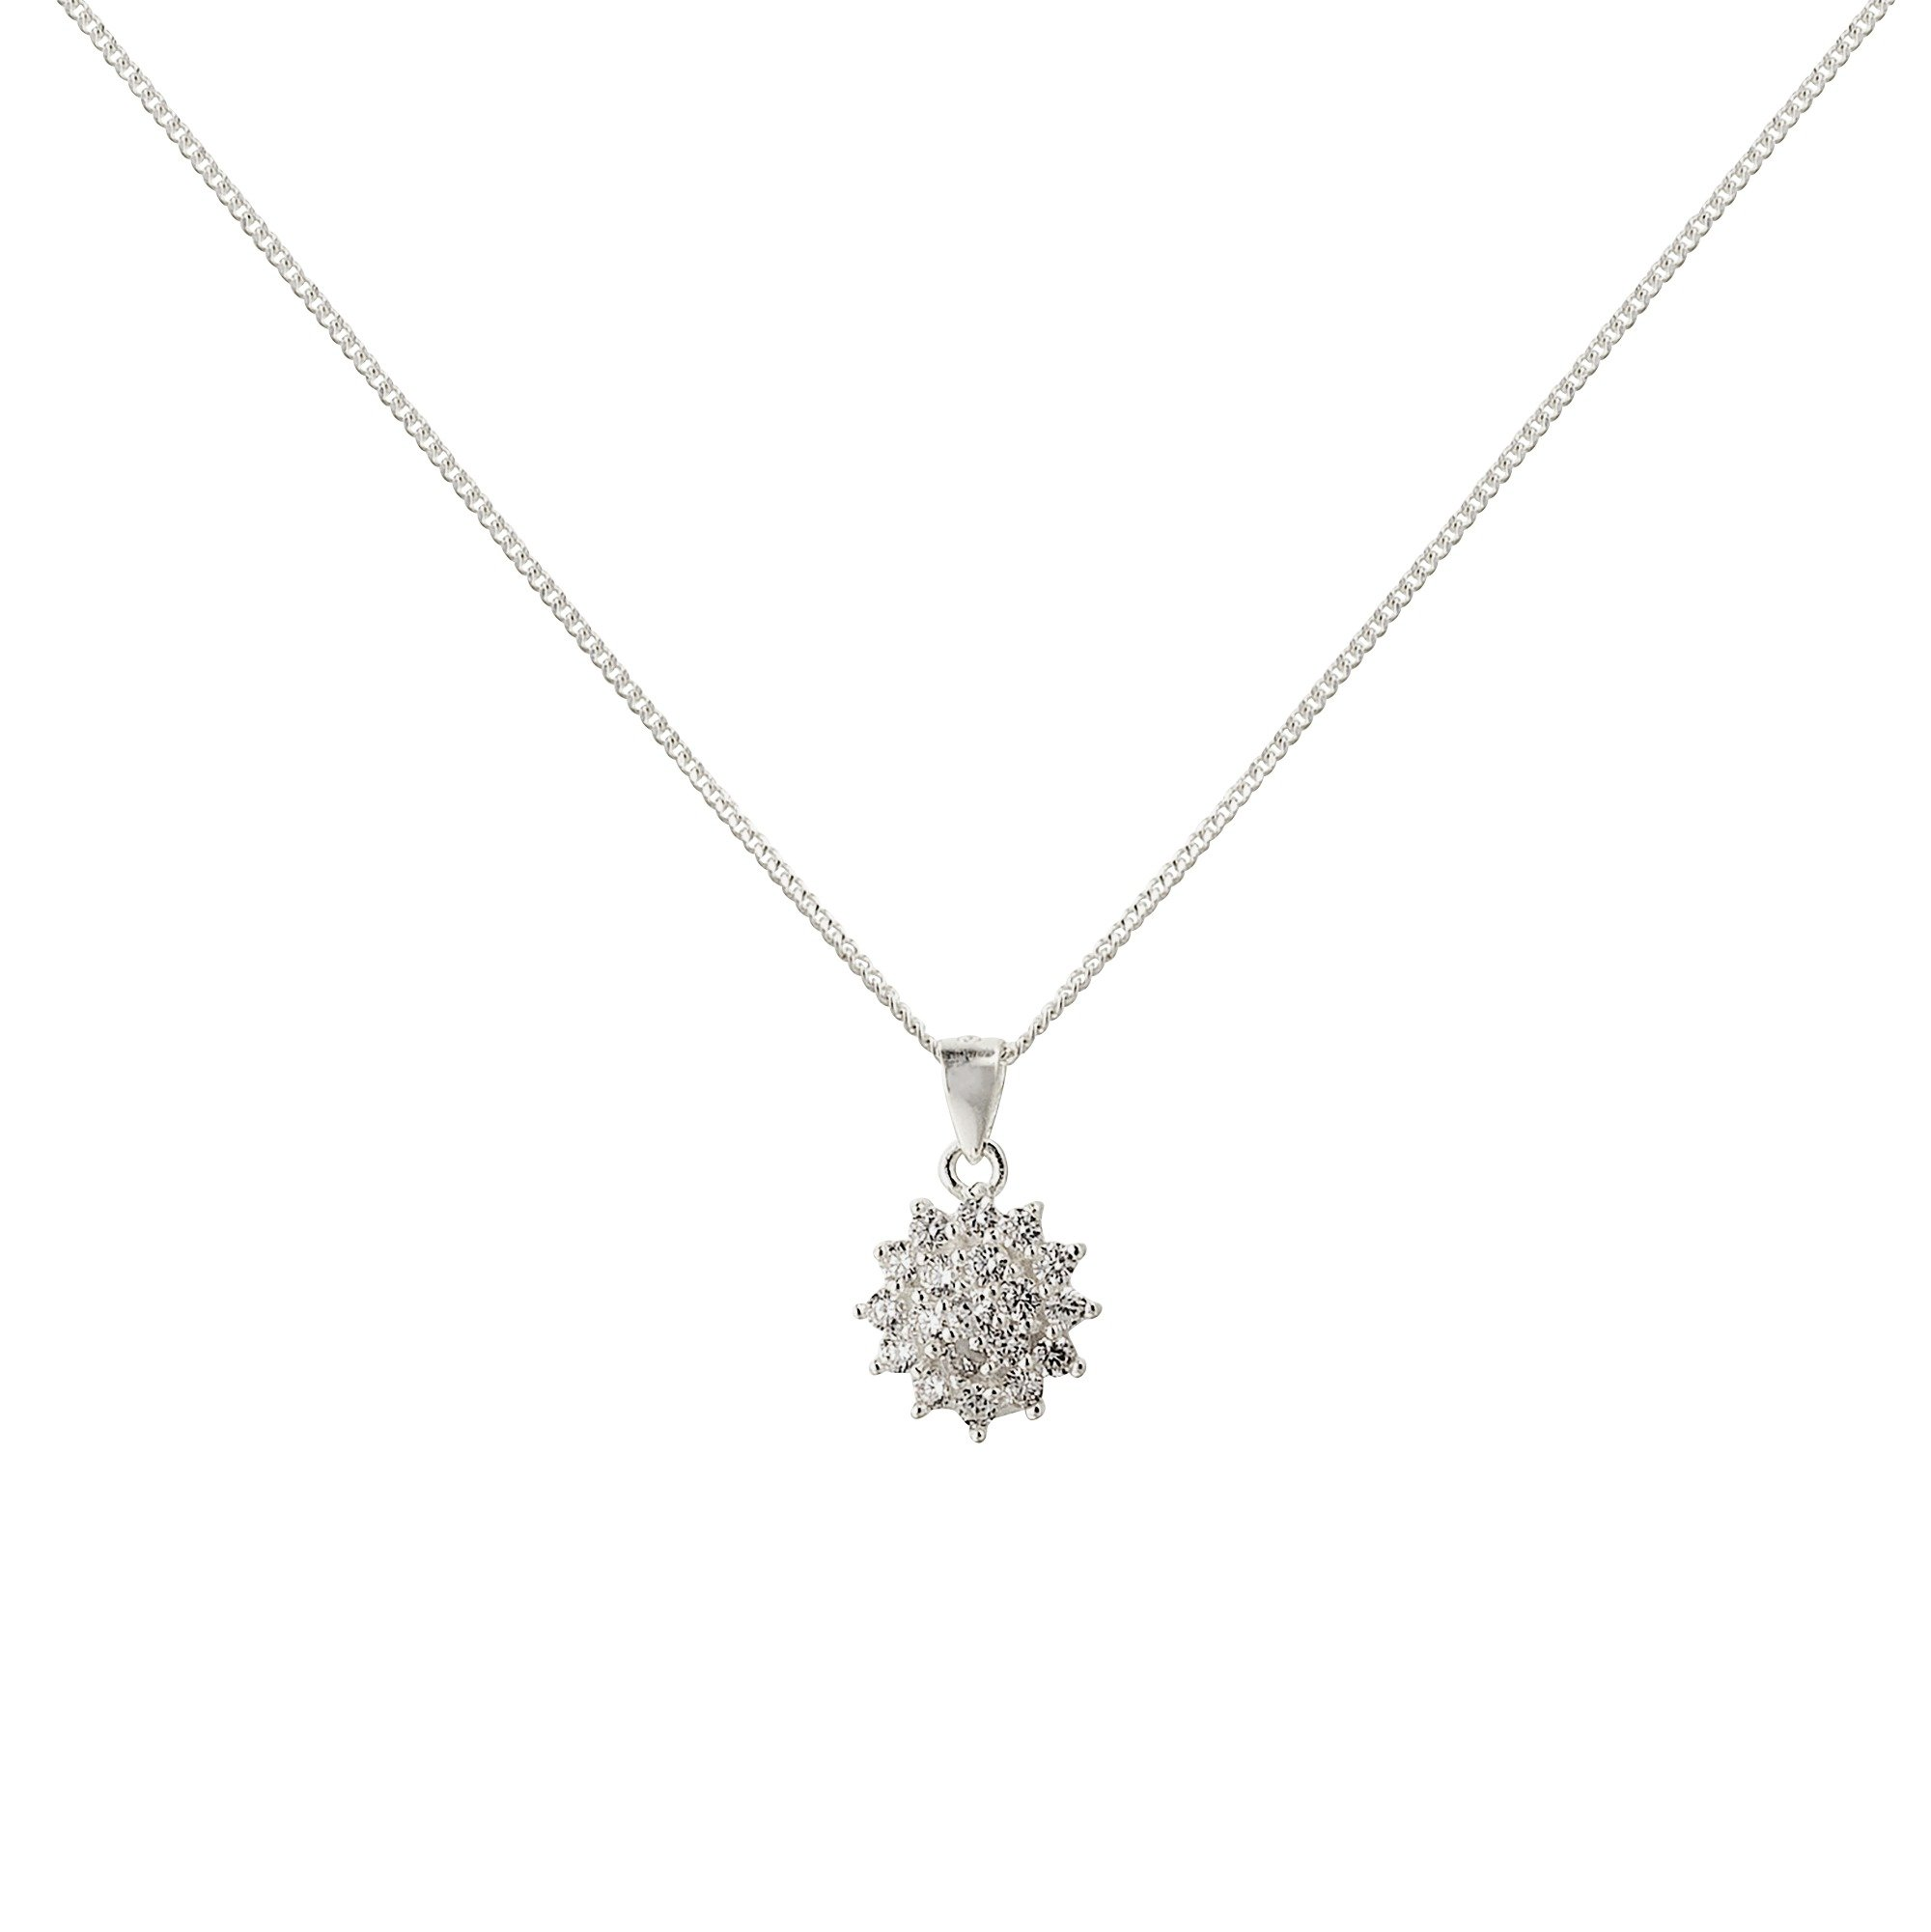 Revere Silver Look Cluster Pendant 18 Inch Necklace